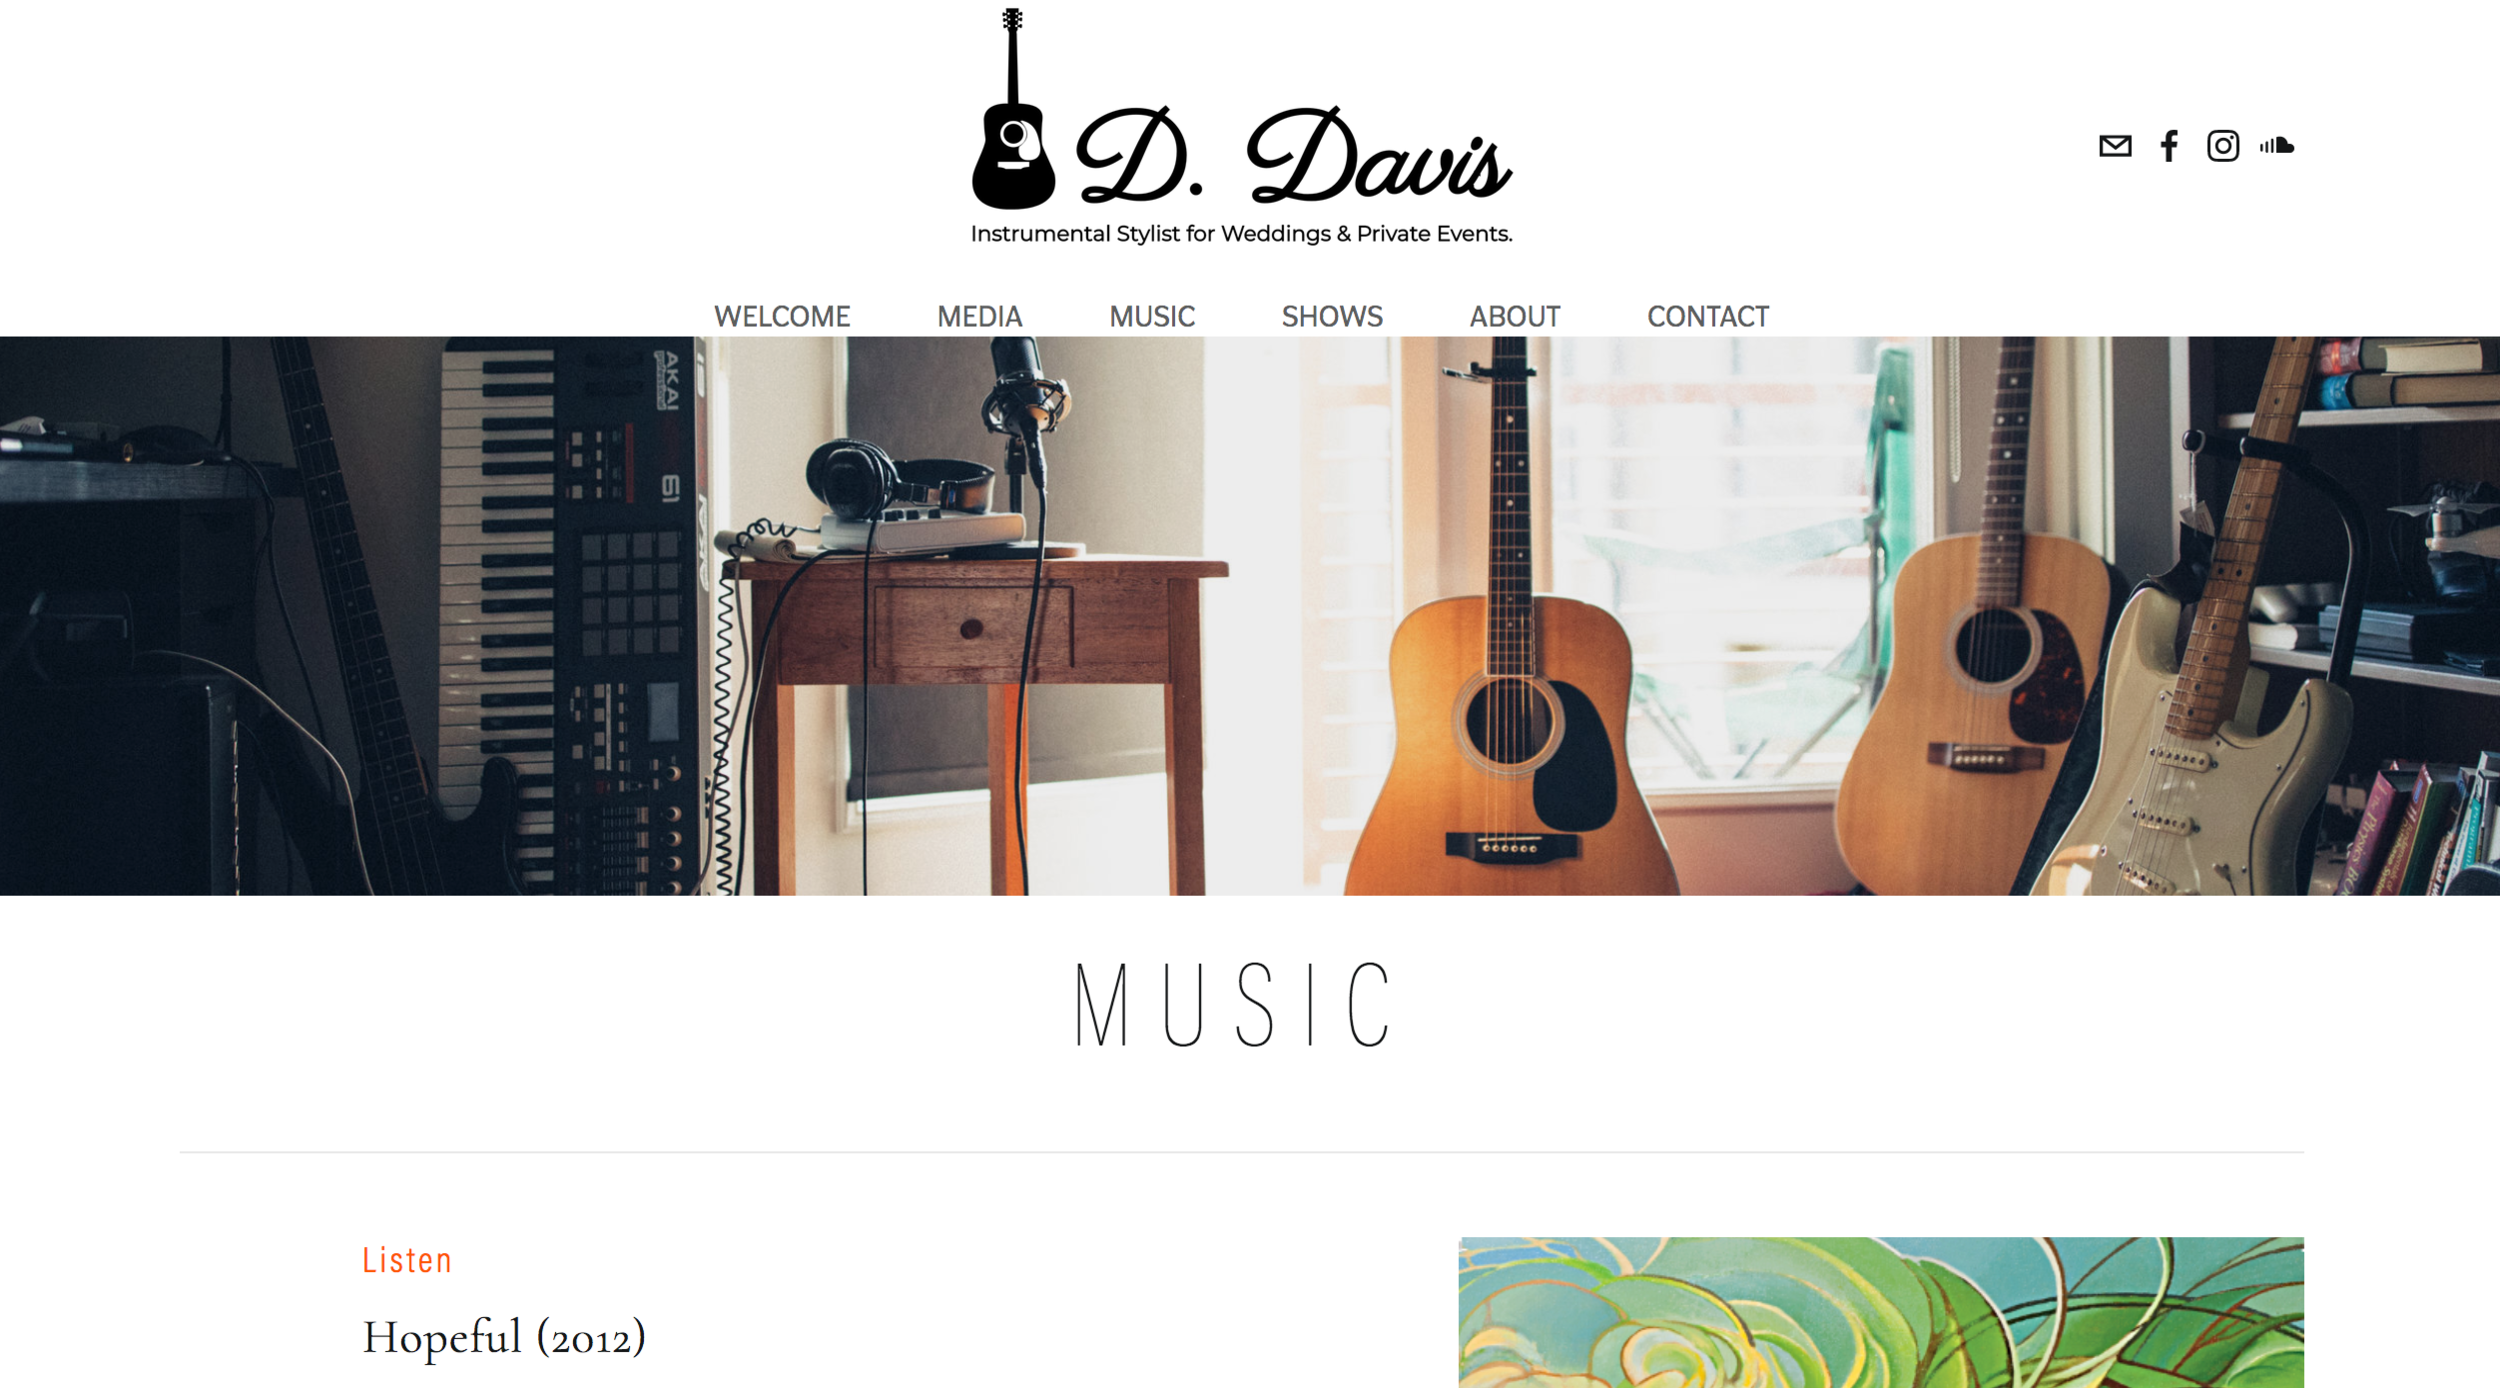 This  harmonious  website is  music to my eyes .  D Davis